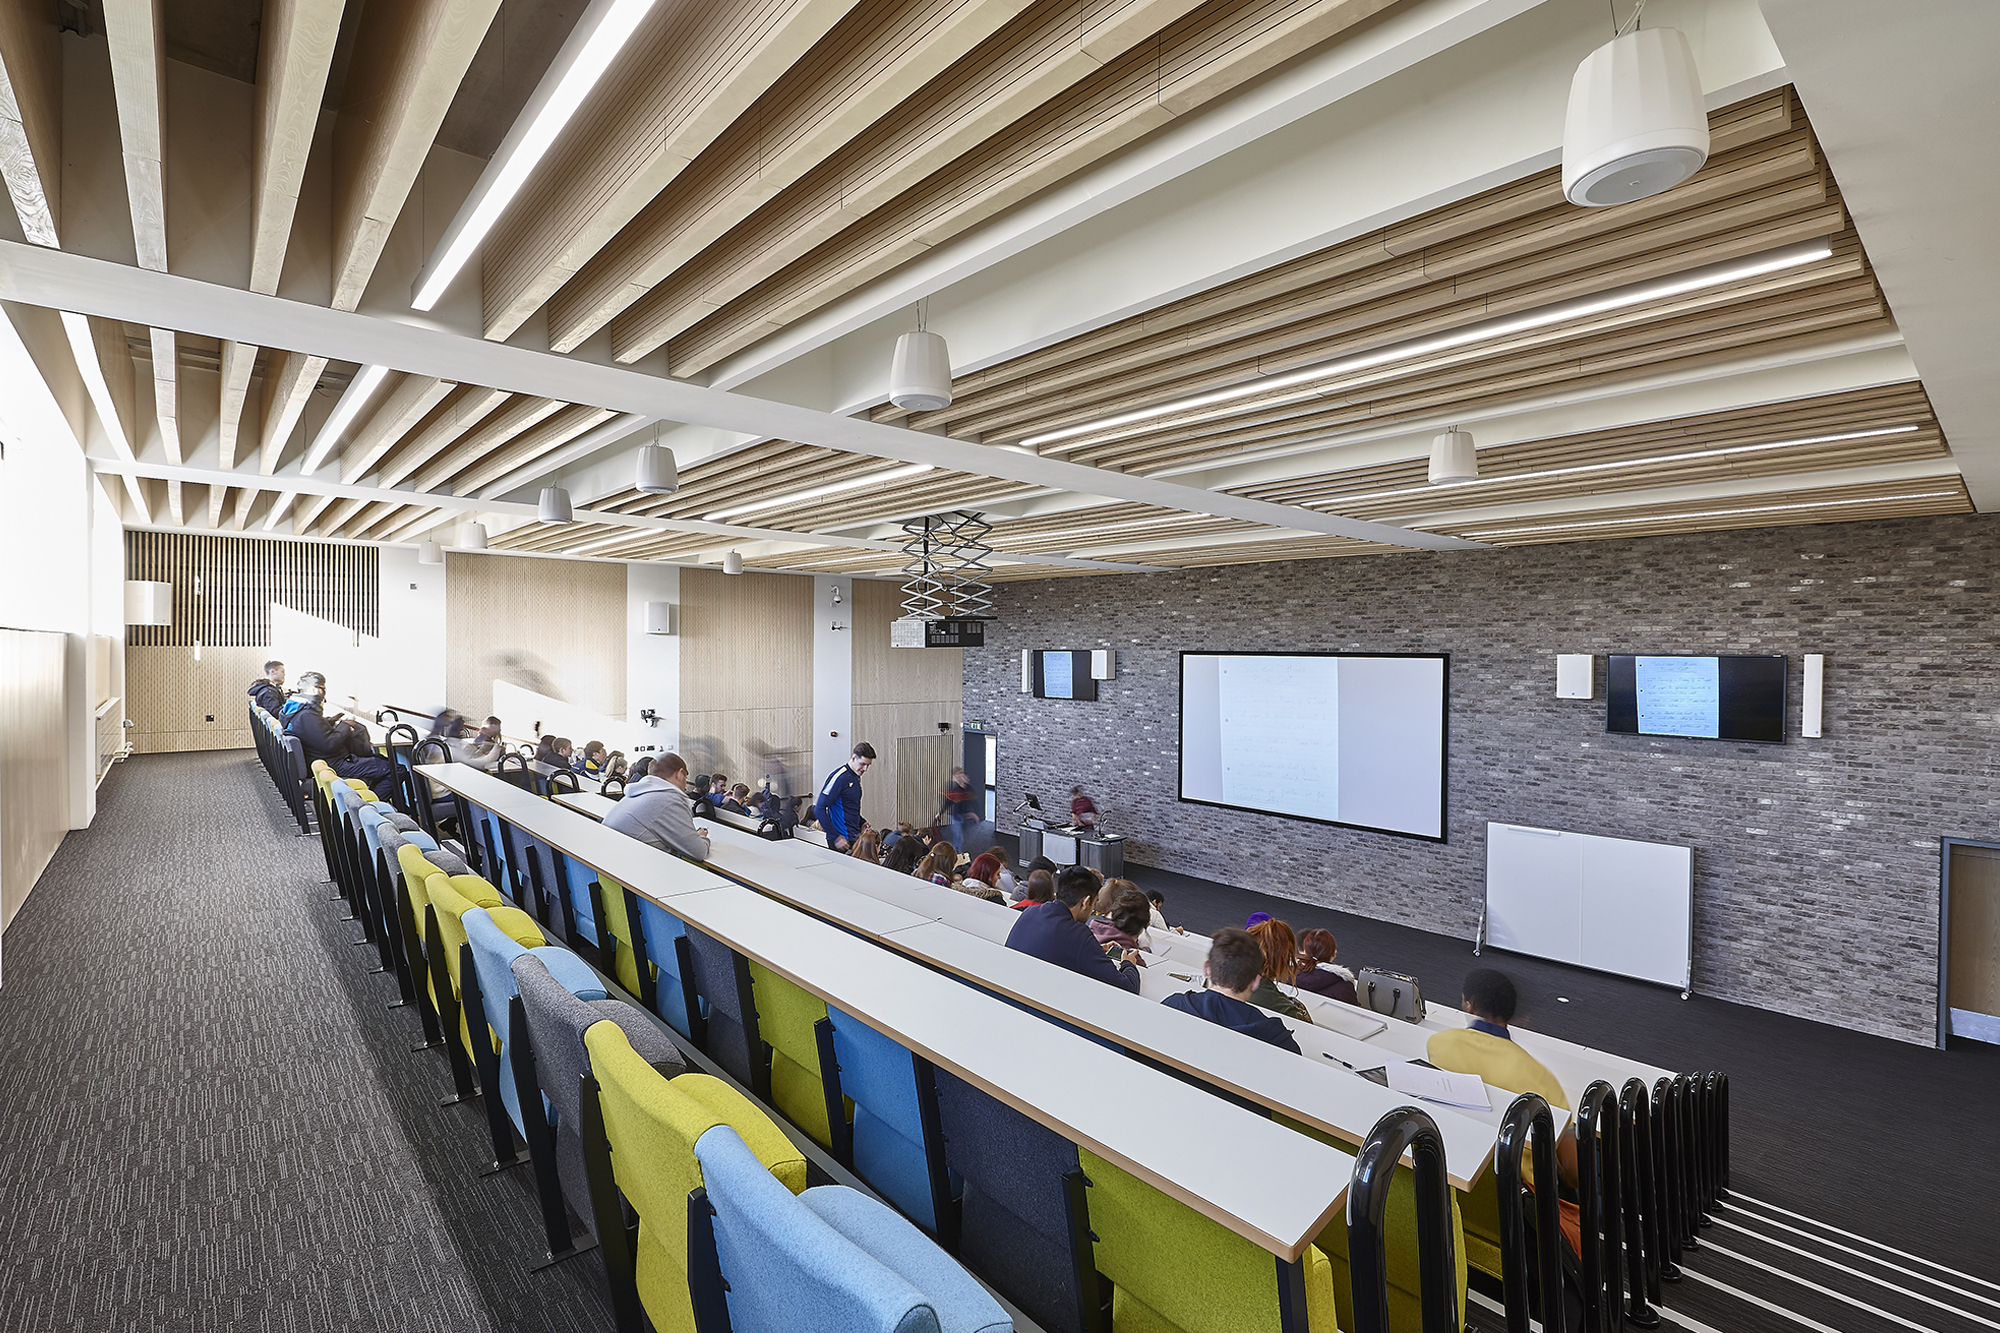 Designed lecture theatre with audio and lighting technology